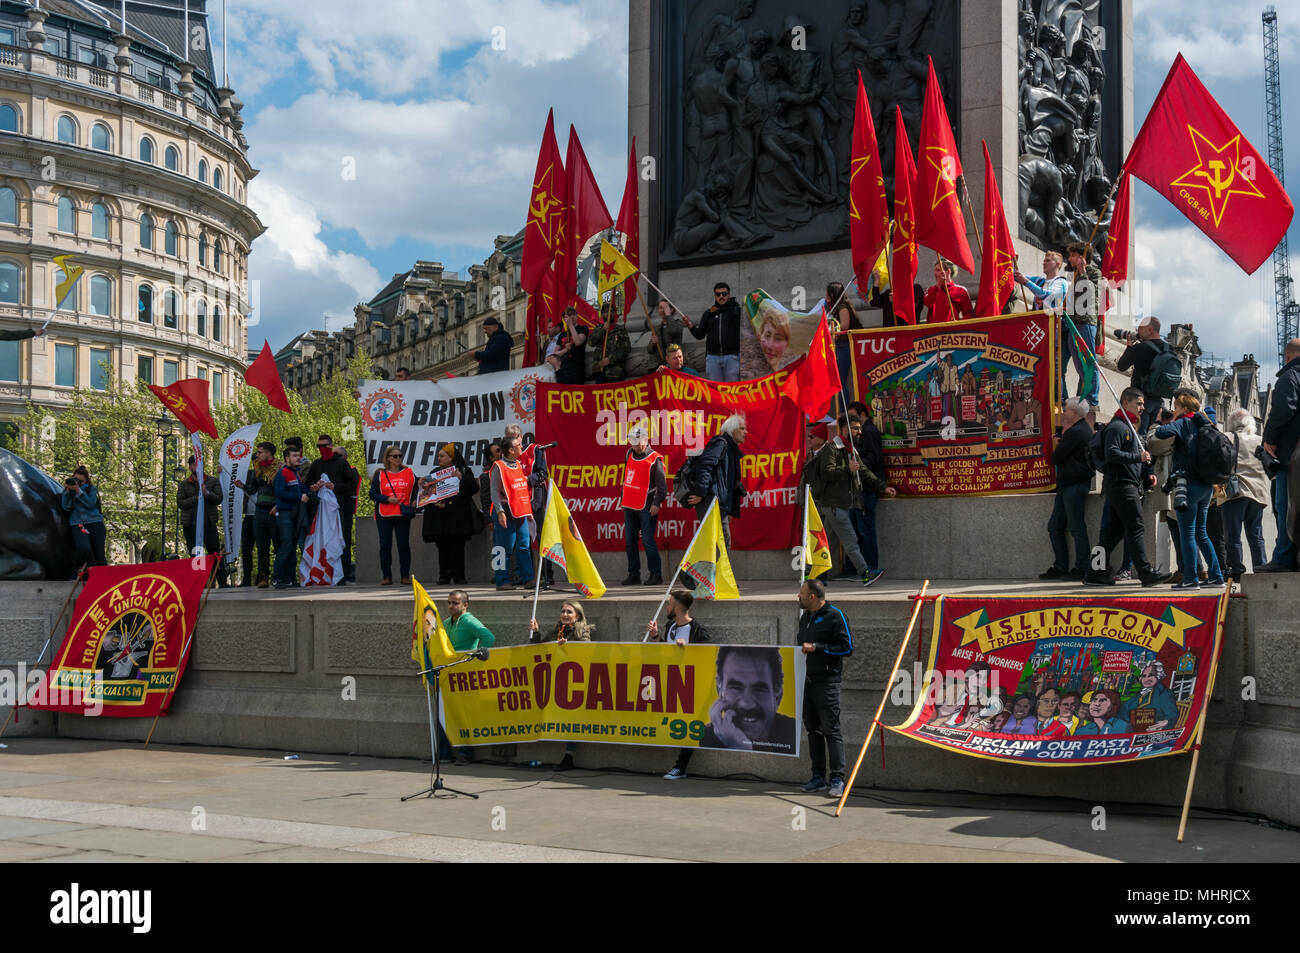 May 1, 2018 - London, UK. 1st May 2018. Banners and flags on the ...